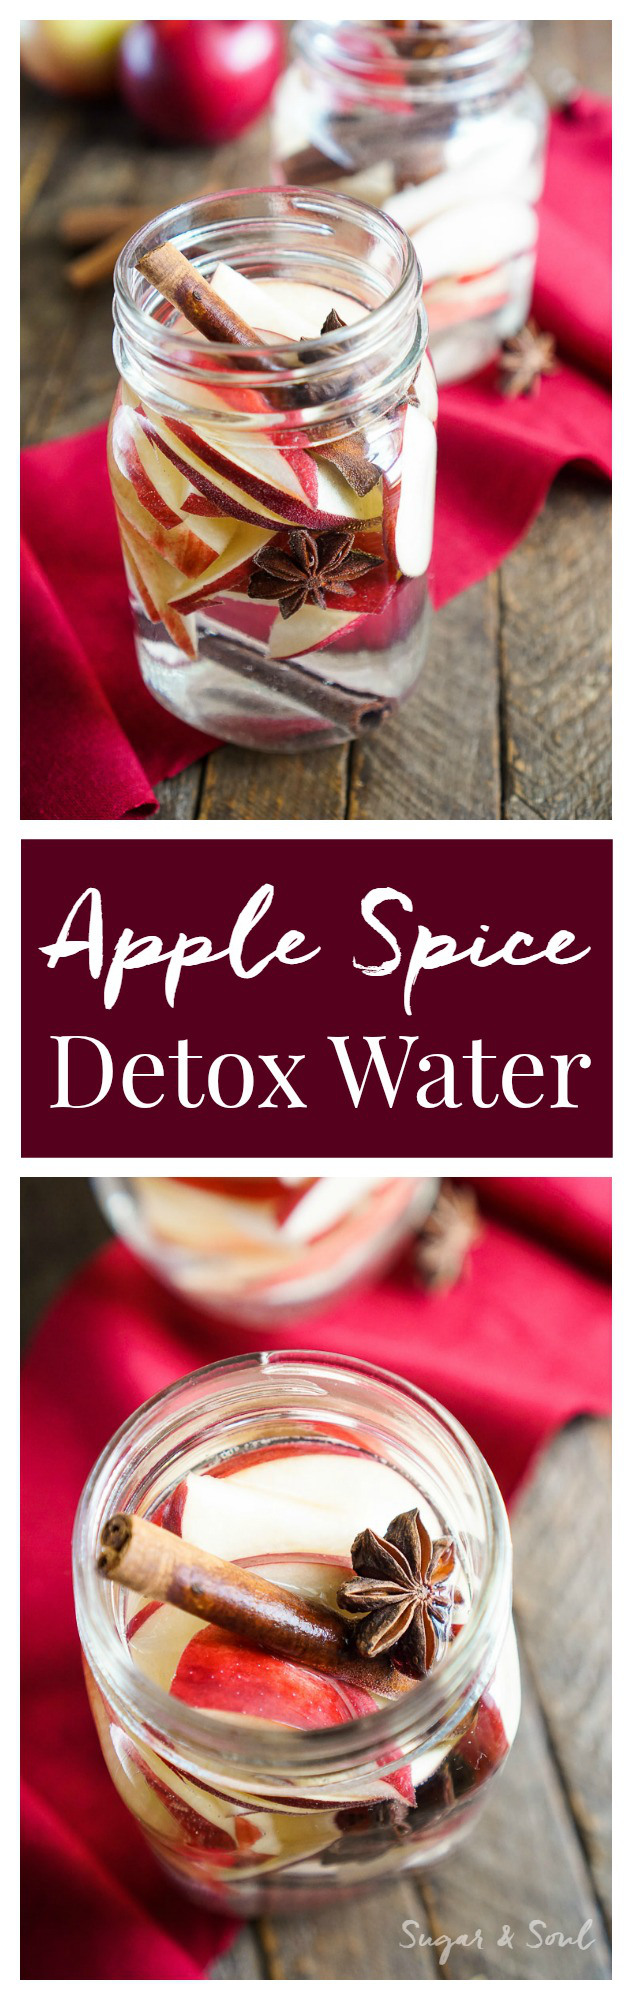 This Apple Spice Detox Water is a simple infusion and a great way to enjoy the flavors of the season without all the sugar!